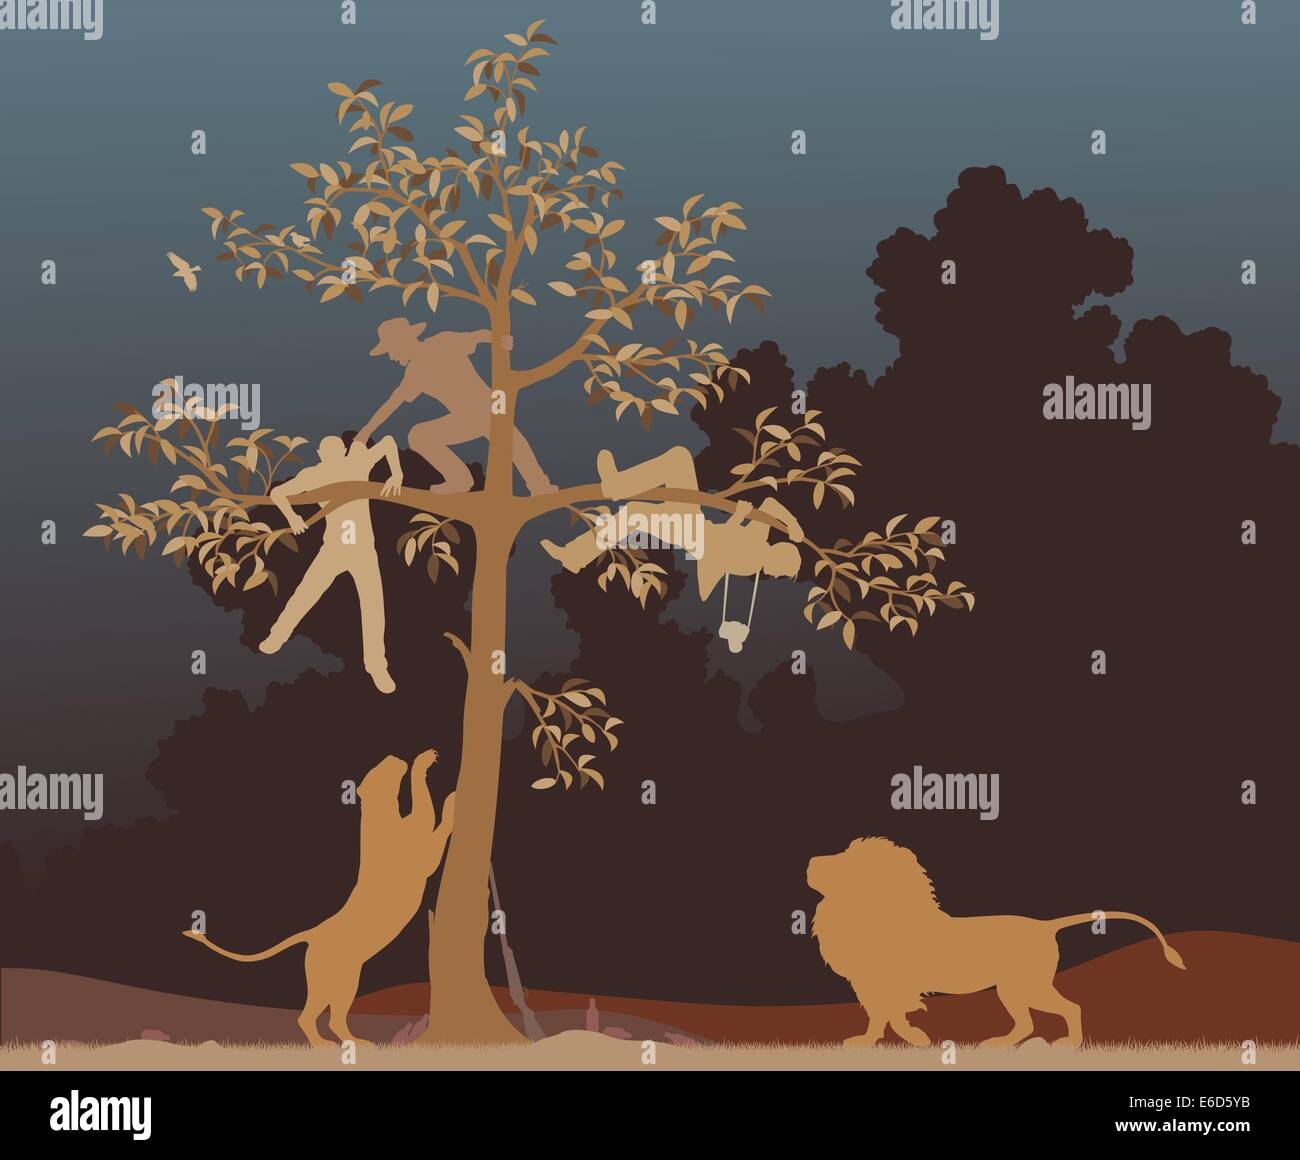 Editable vector illustration of three men chased into a tree by a pair of lions - Stock Vector